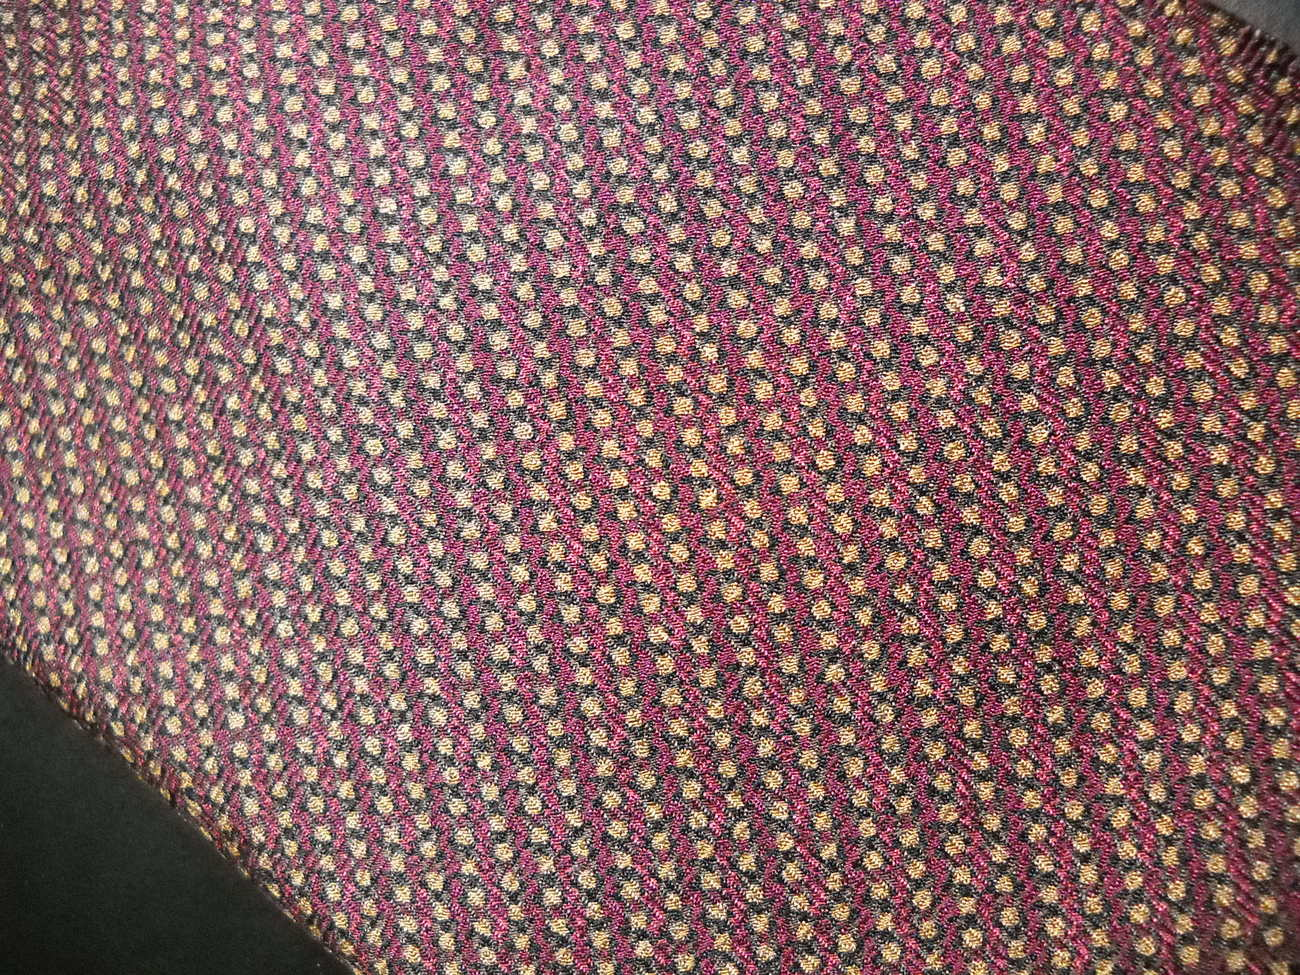 Hart Schaffner Marx Neck Tie Silk Browns Golds and Reds Tie Hand Made in Italy